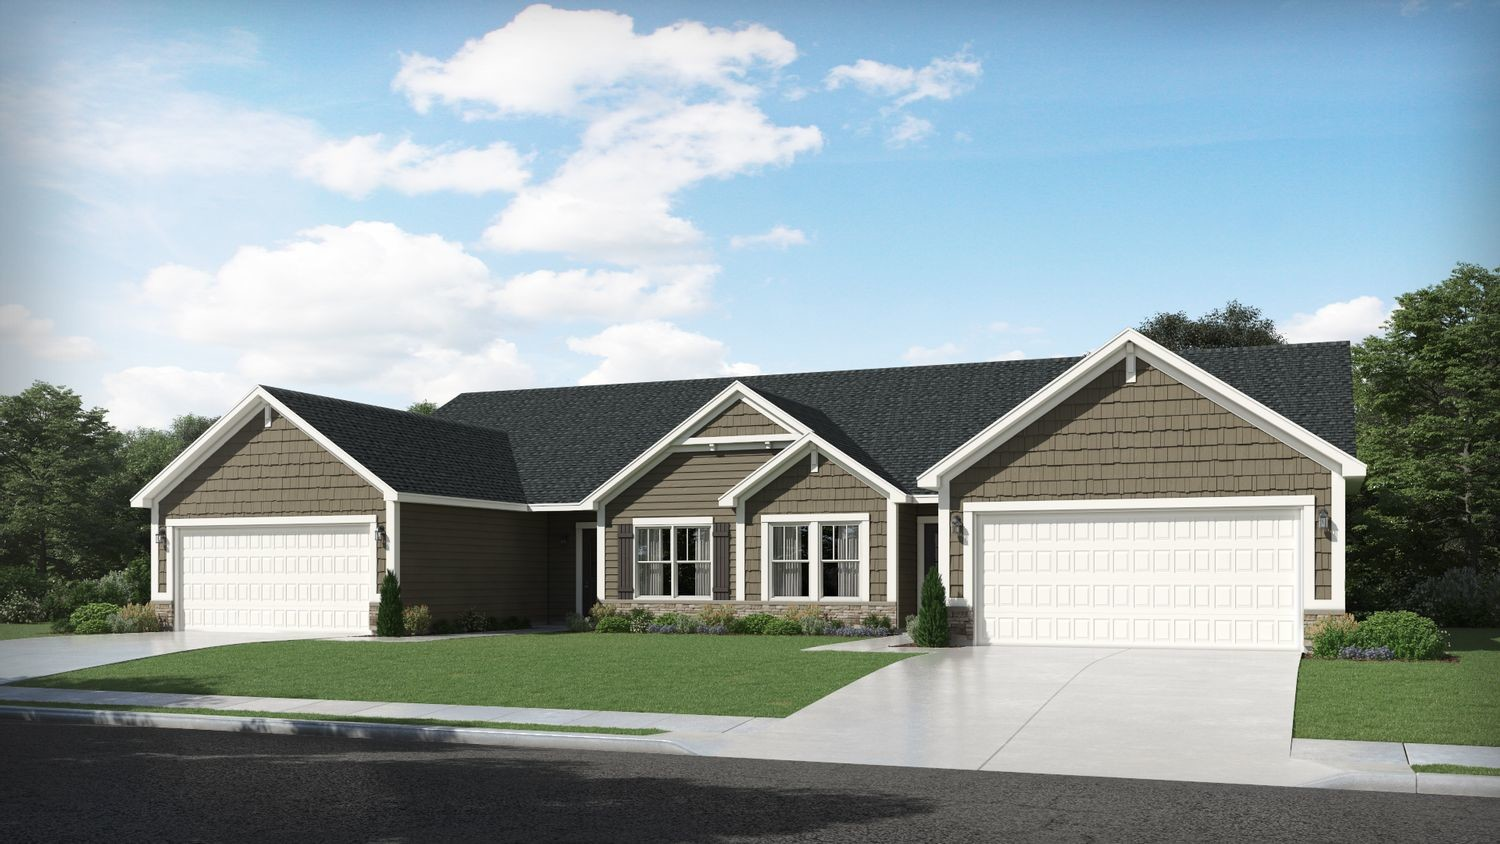 Ready To Build Home In Walkerton Park Community